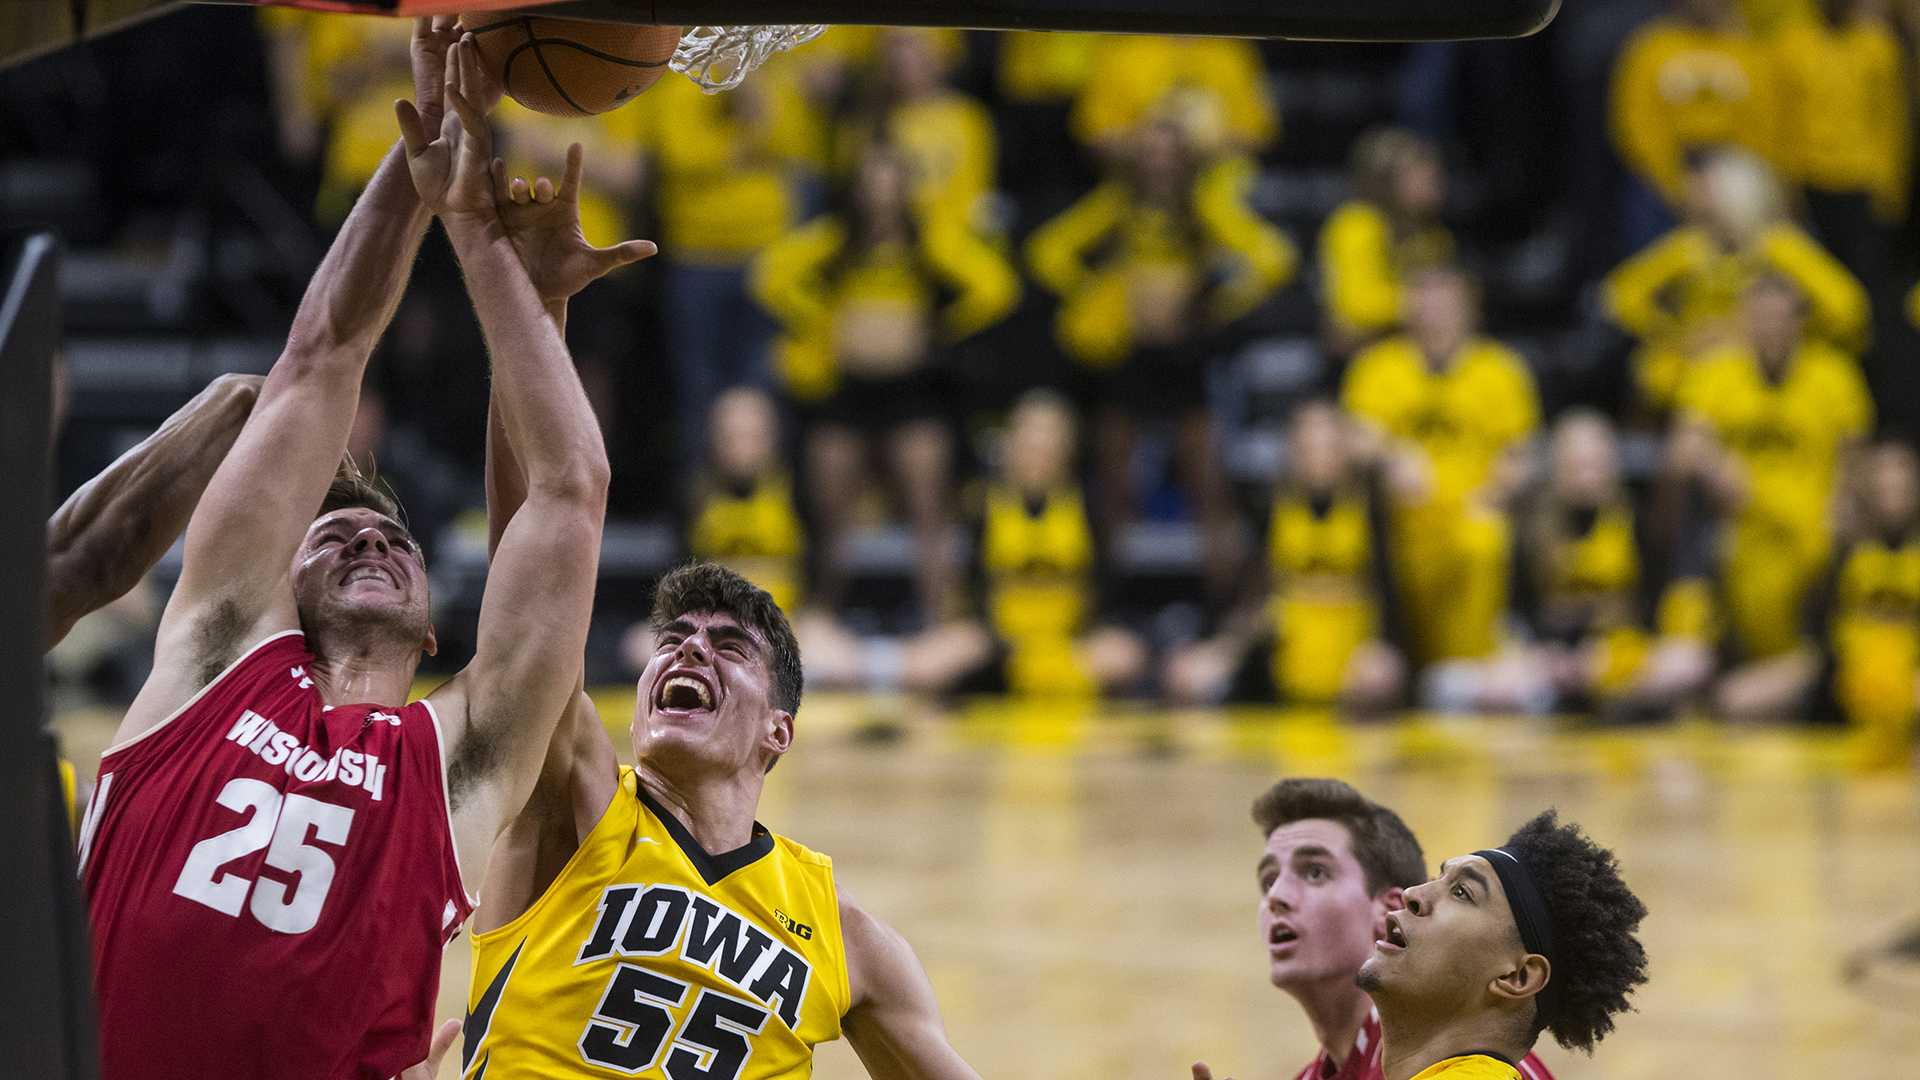 Iowa's Luka Garza (55) and Wisconsin's Alex Illikainen (25) jump for the rebound during the NCAA men's basketball game between Iowa and Wisconsin at Carver-Hawkeye Arena on Tuesday, Jan. 23, 2018. (Ben Allan Smith/The Daily Iowan)